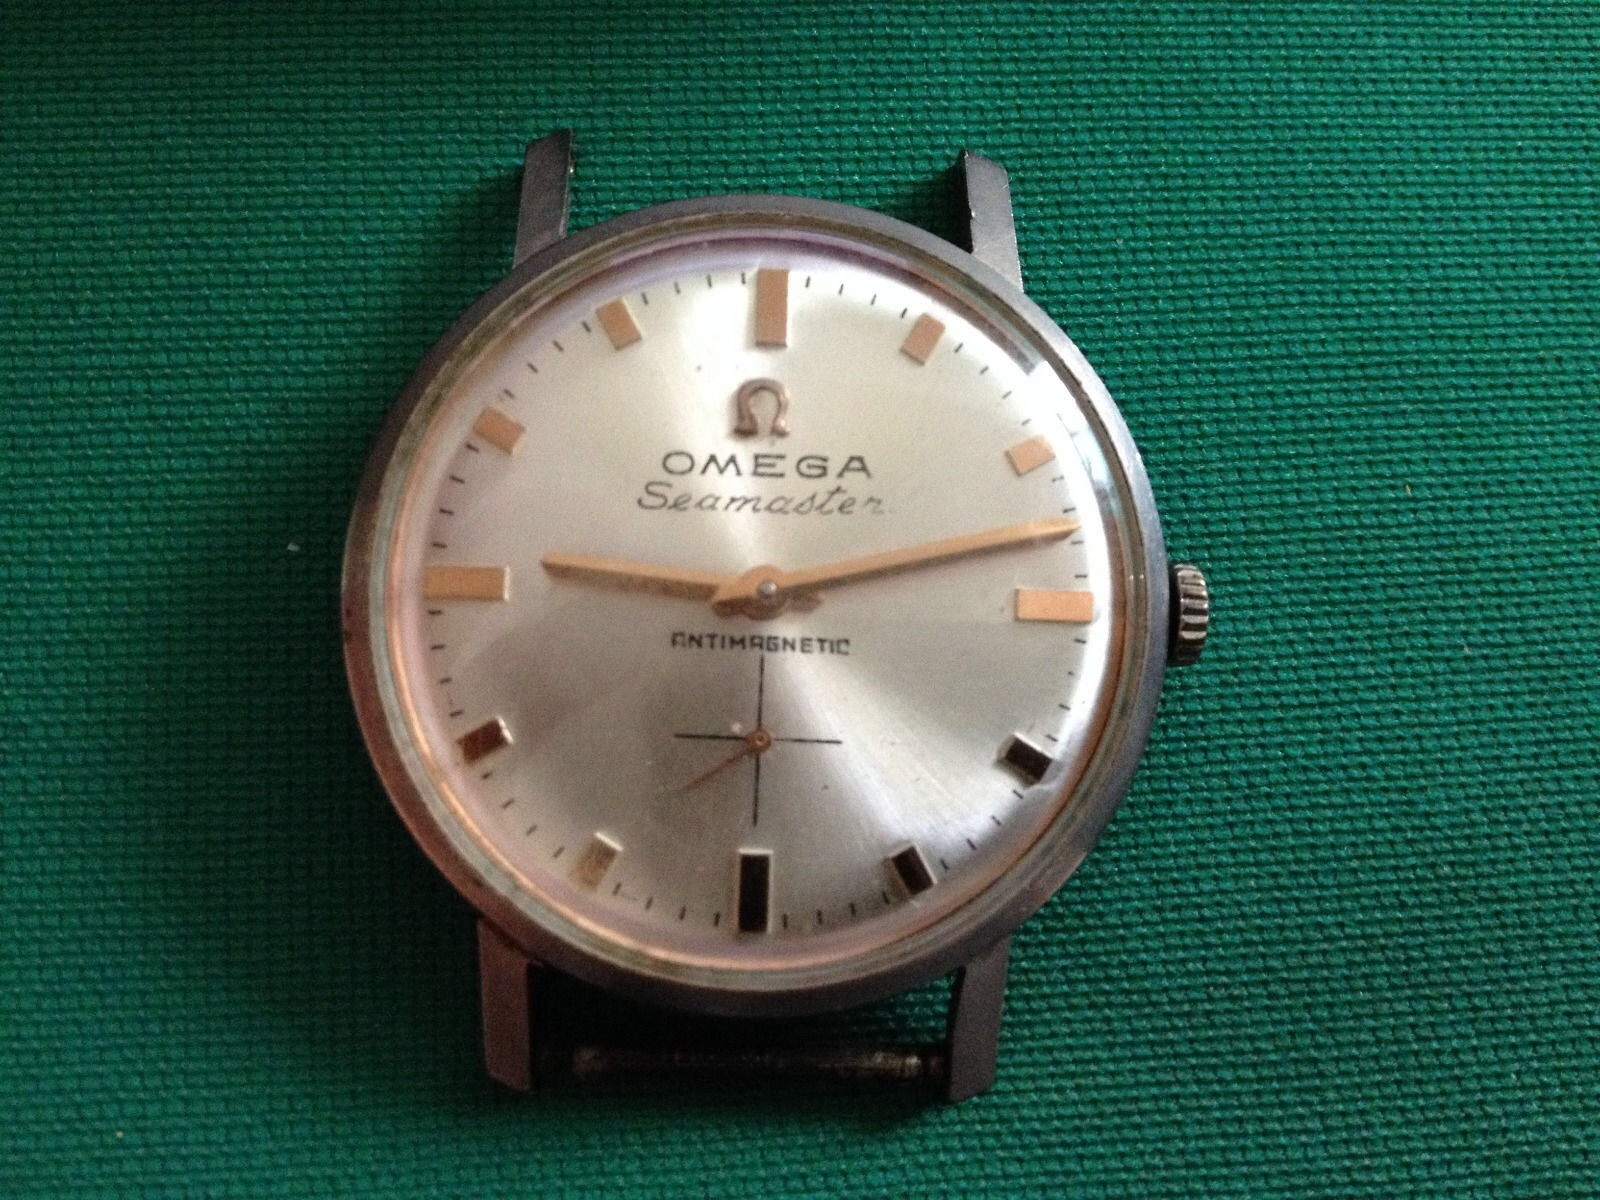 Omega Seamaster Antimagnetic Fake Omega Forums